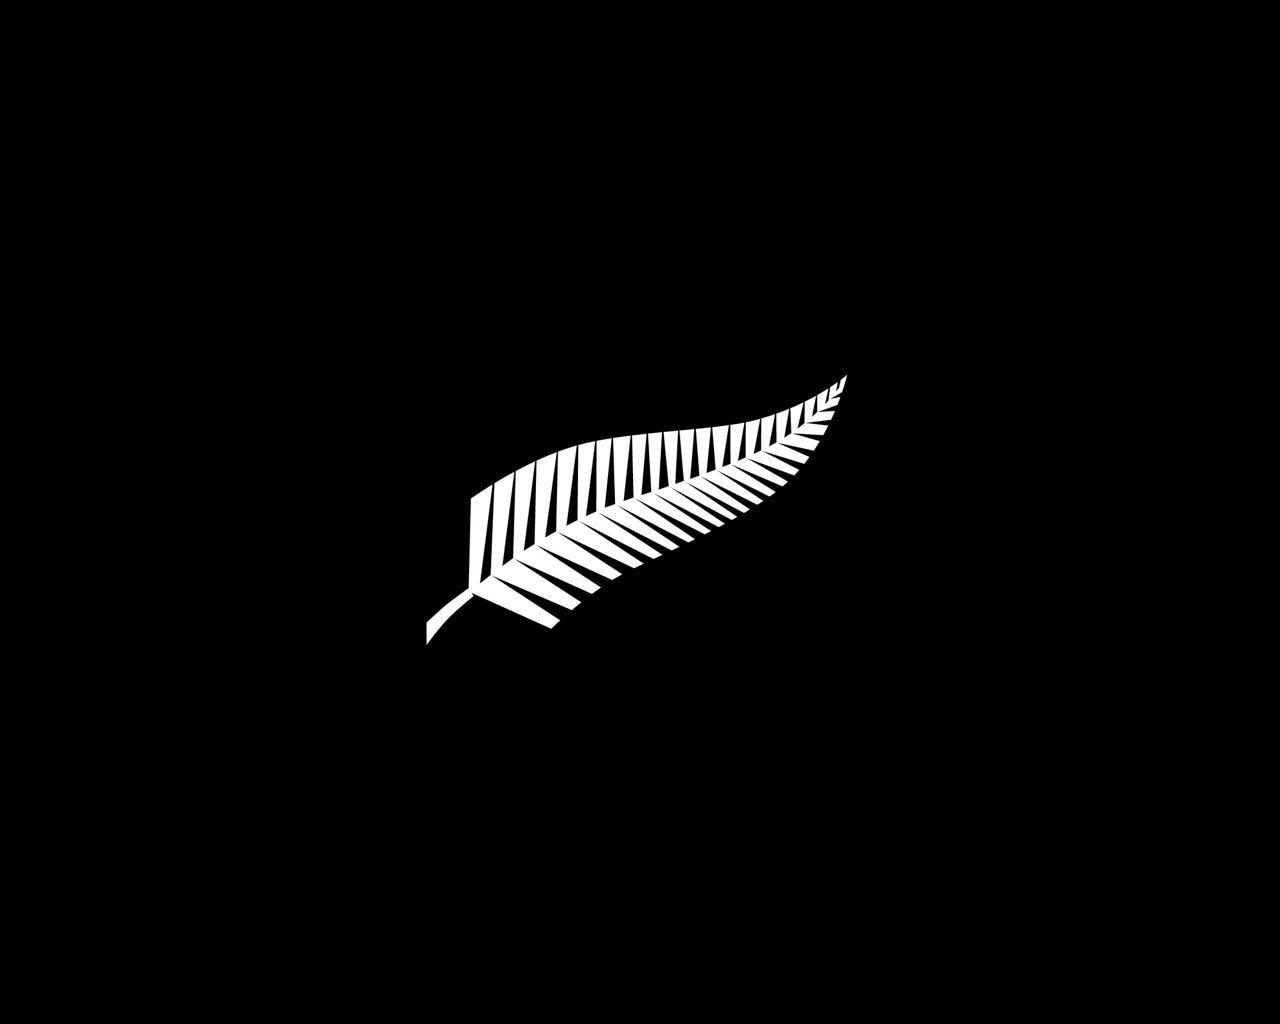 Pin by Ian Perry on Sports All blacks rugby All blacks